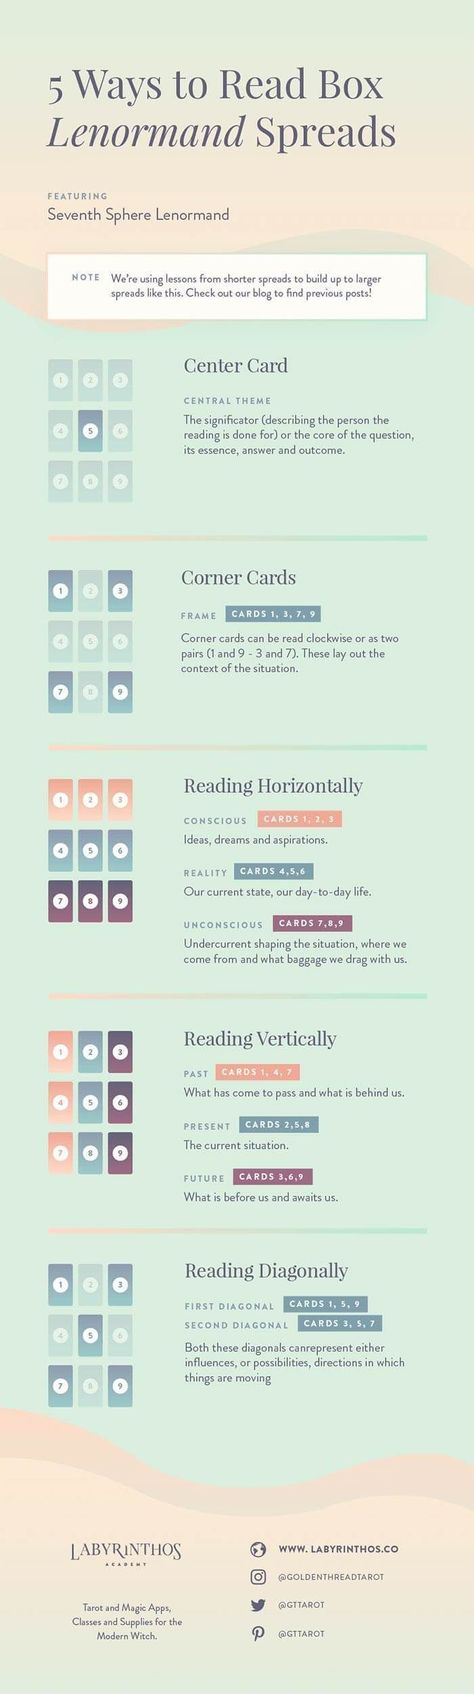 How to Read Nine-Card (Portrait, Box or 3x3) Lenormand Spreads - Full Article and Infographic explaining all card positions and methods | Tarot, divination, magick, mysticism, wicca, wiccan, pagan, spell craft, spells, fortunetelling, occult #howtoreadtarotcards